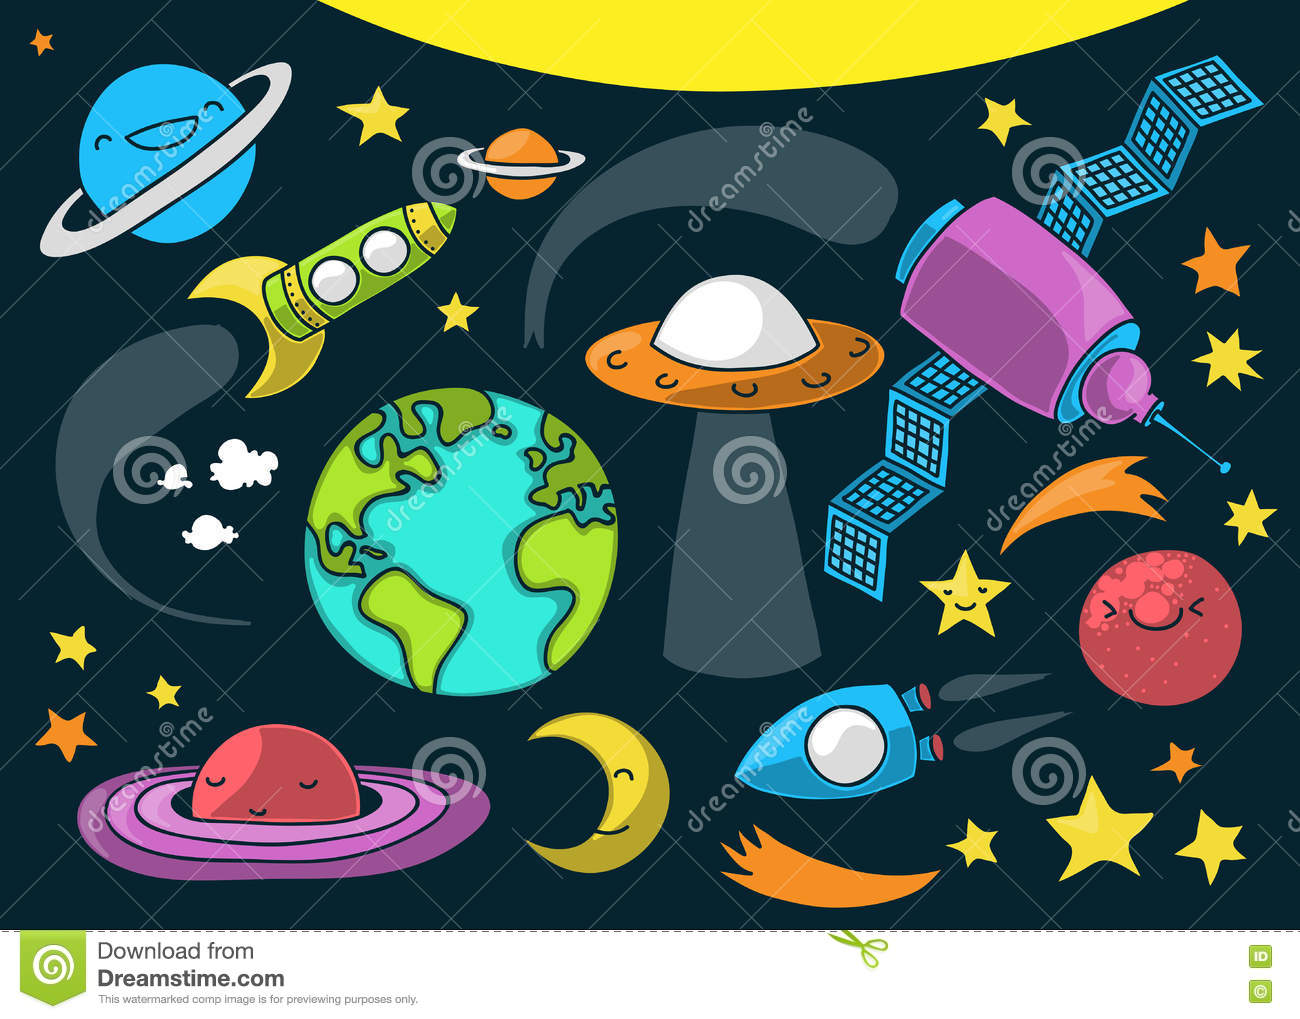 Cute Outer Space Cartoon Stock Vector. Illustration Of